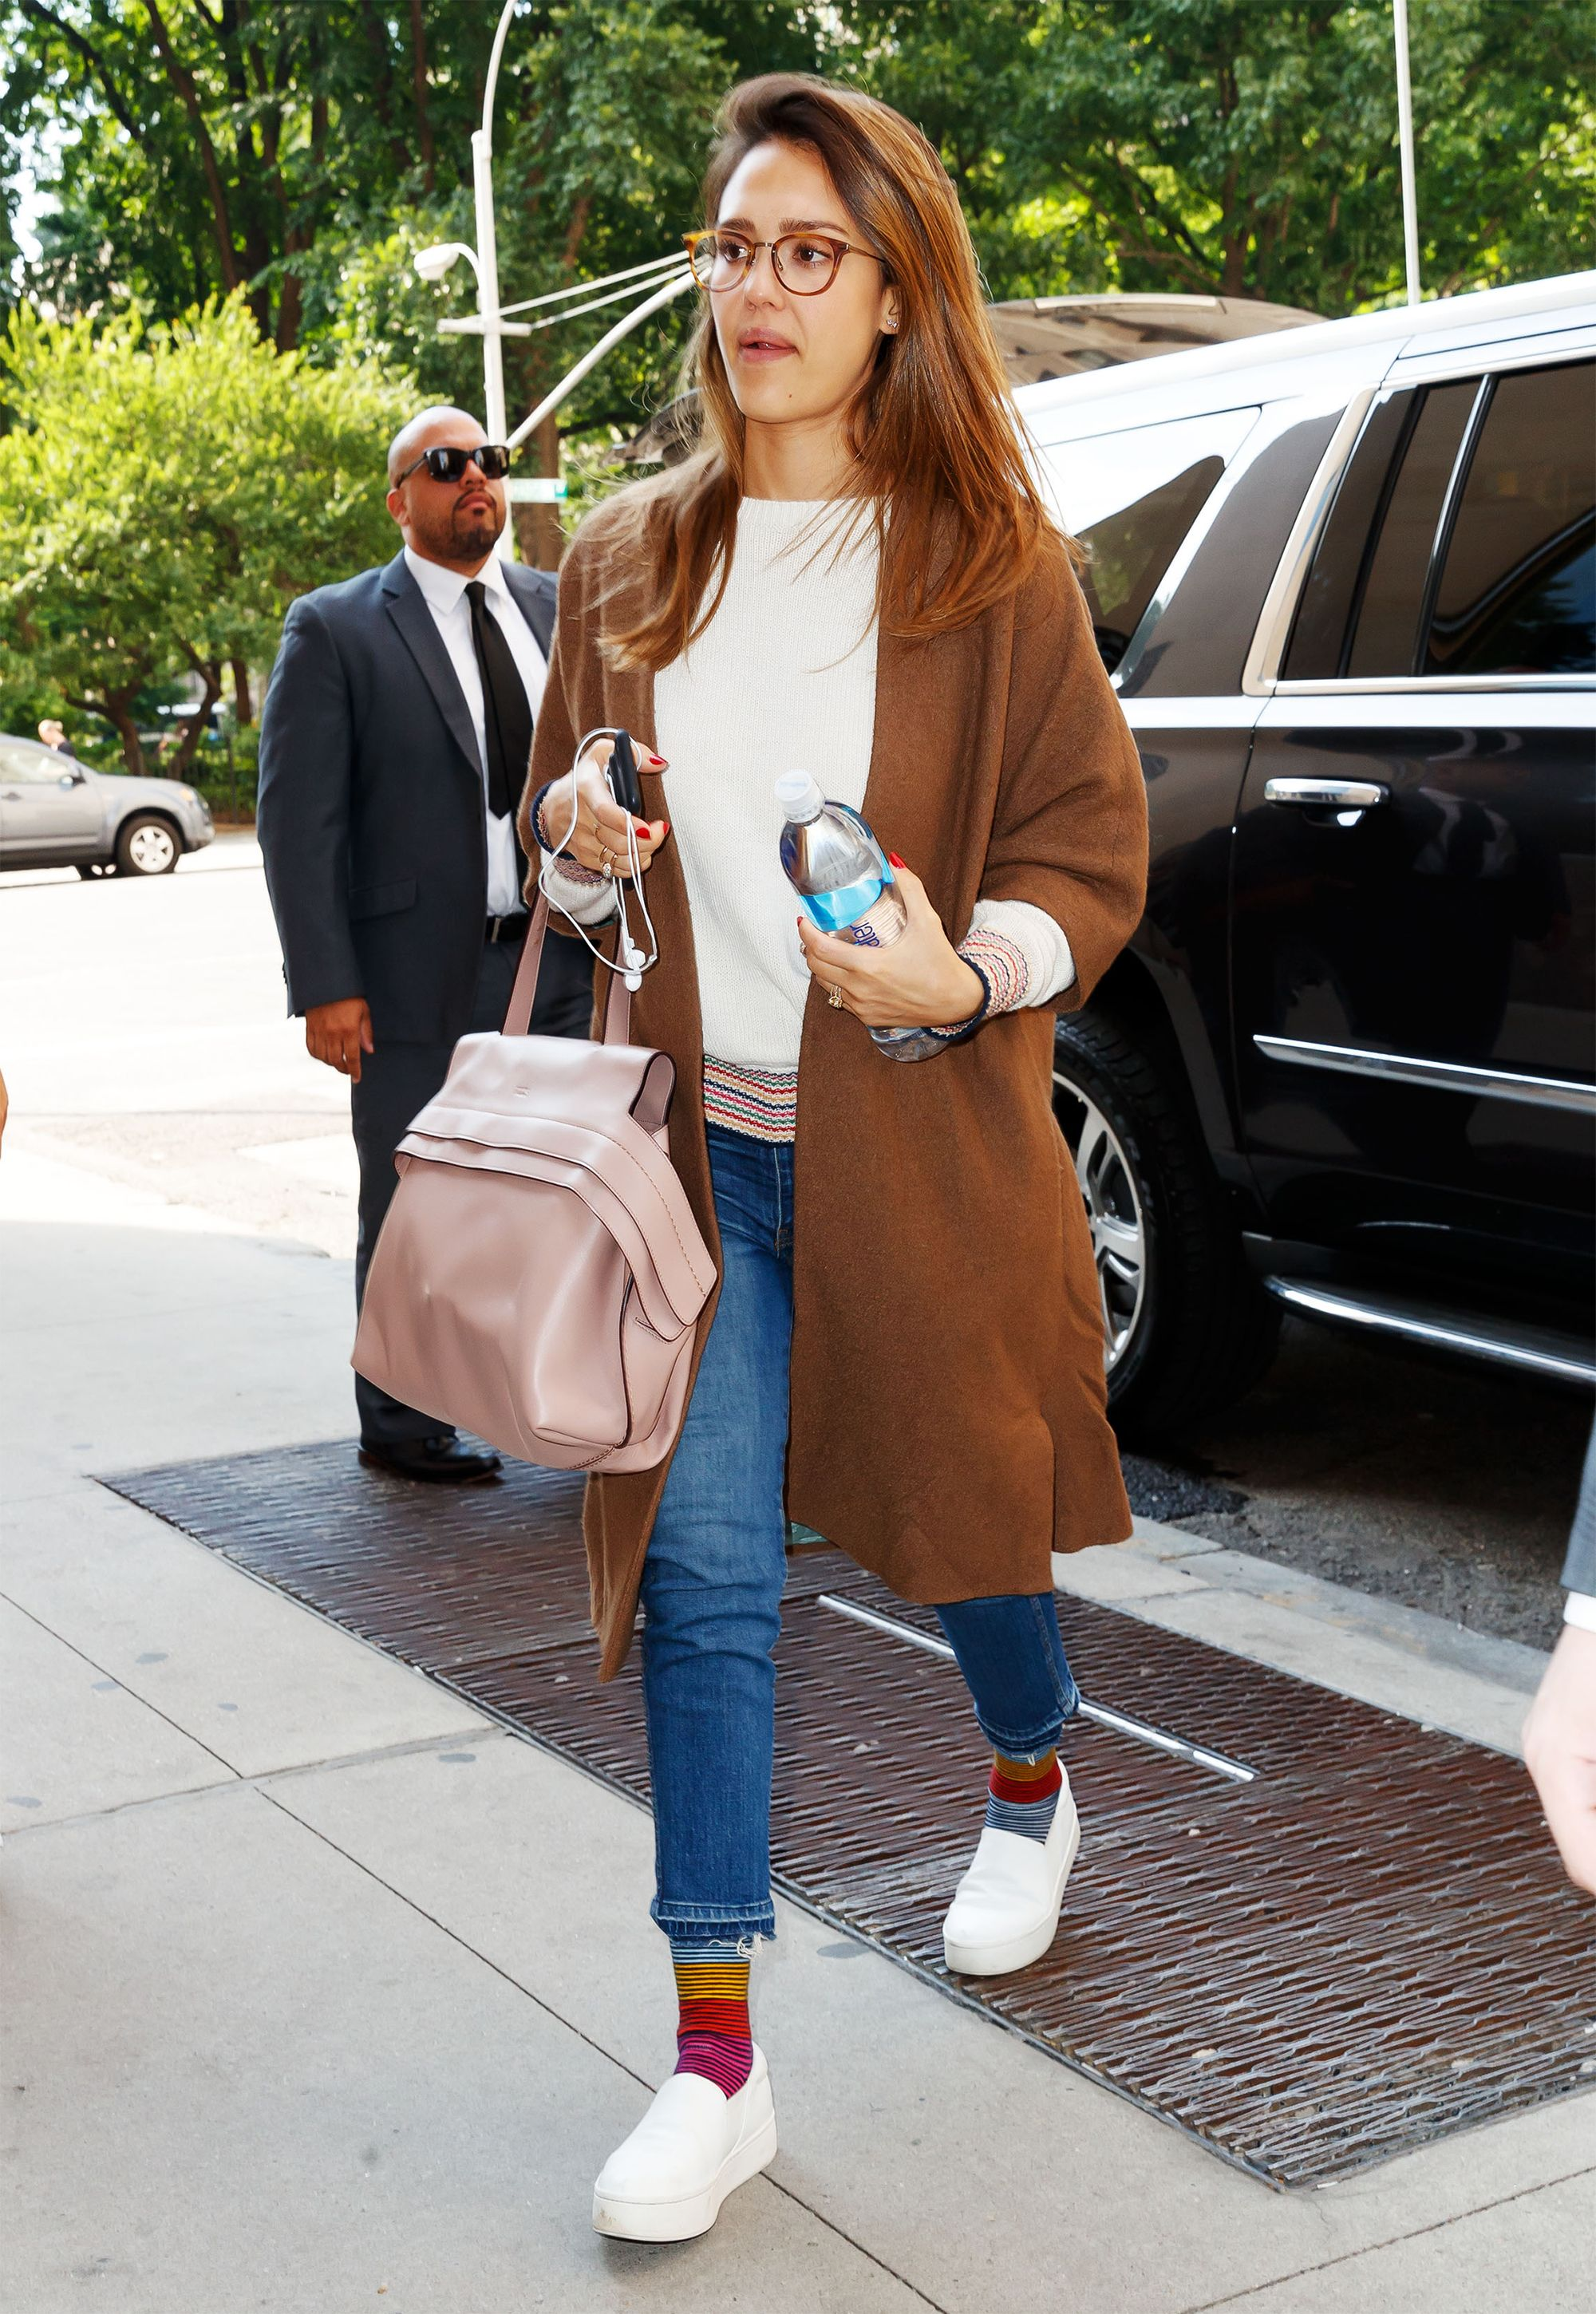 530927346e Jessica Alba Wore Four Outfits in a Day That You'll Want to Copy  Immediately   Jessica Alba just wore four outfits in a single day, and they  were all worth ...